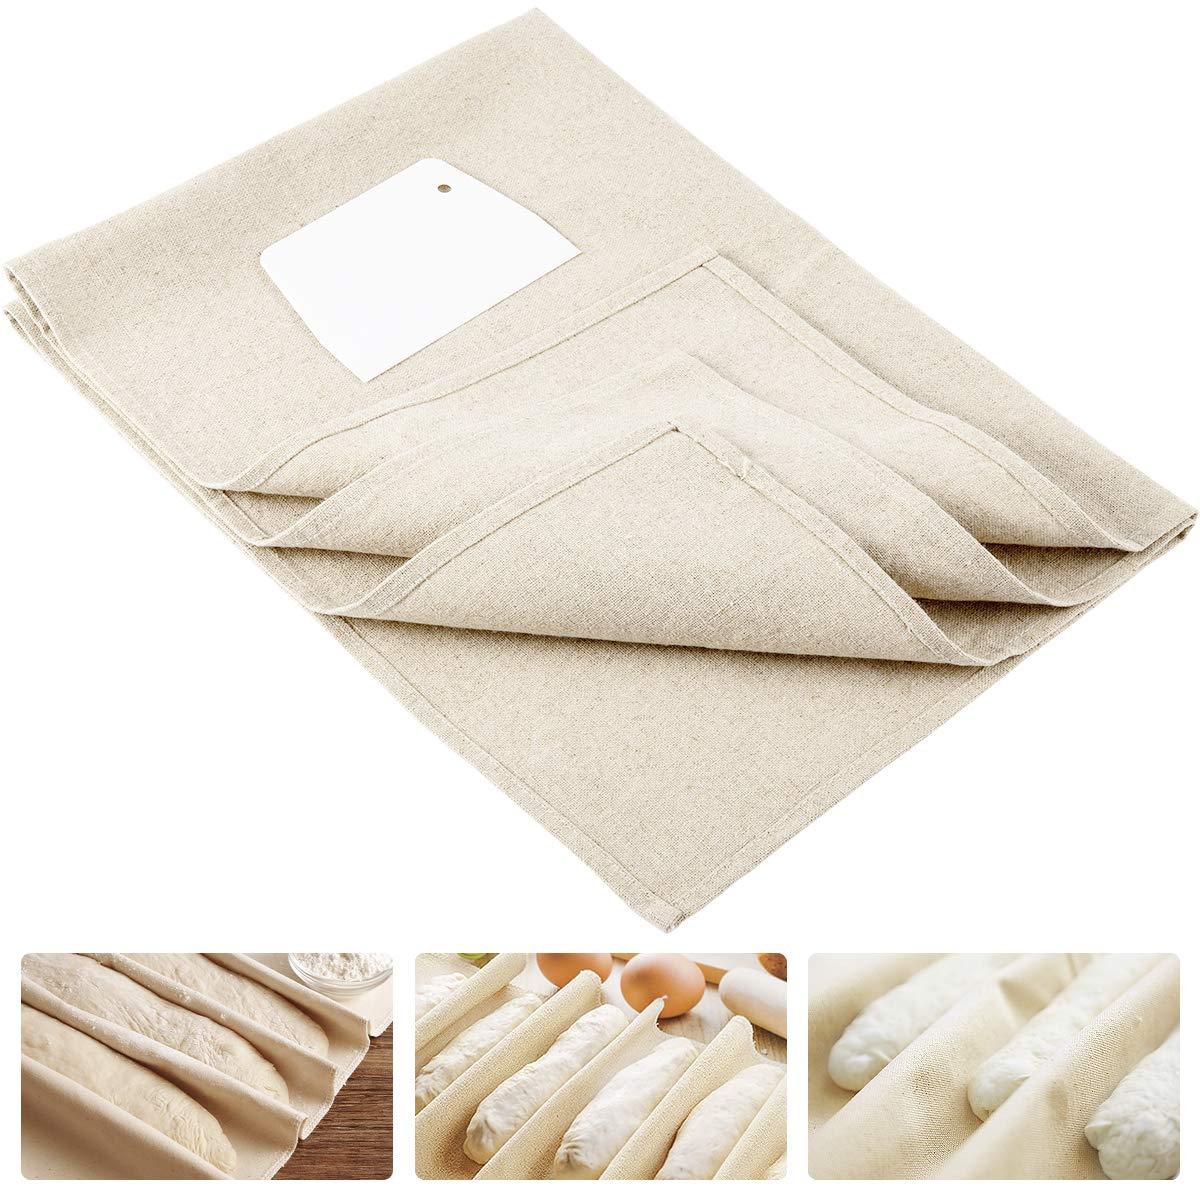 ANPHSIN Large Professional Bakers Dough Couche (35'' × 26'')- 100% Natural Flax Heavy Duty Linen Pastry Proofing Cloth for Baking French Bread Baguettes Loafs by ANPHSIN